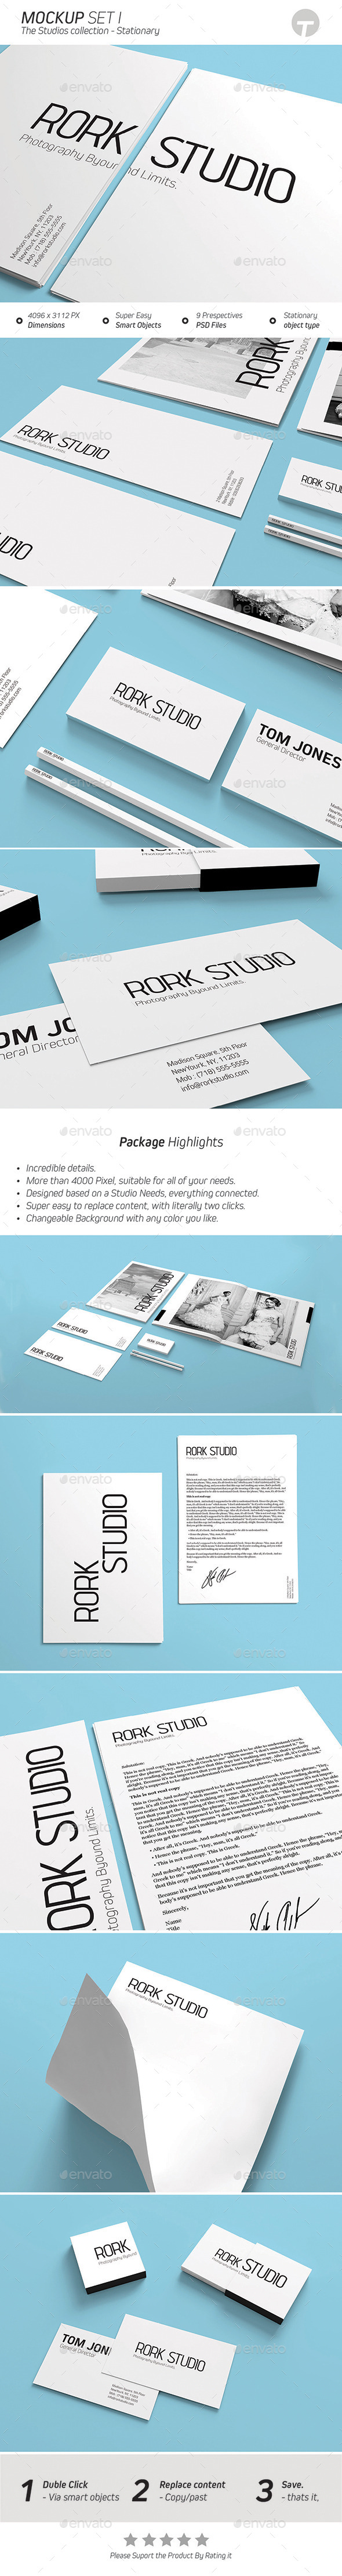 GraphicRiver Stationary Mockup Studios Collection Set 1 9475182